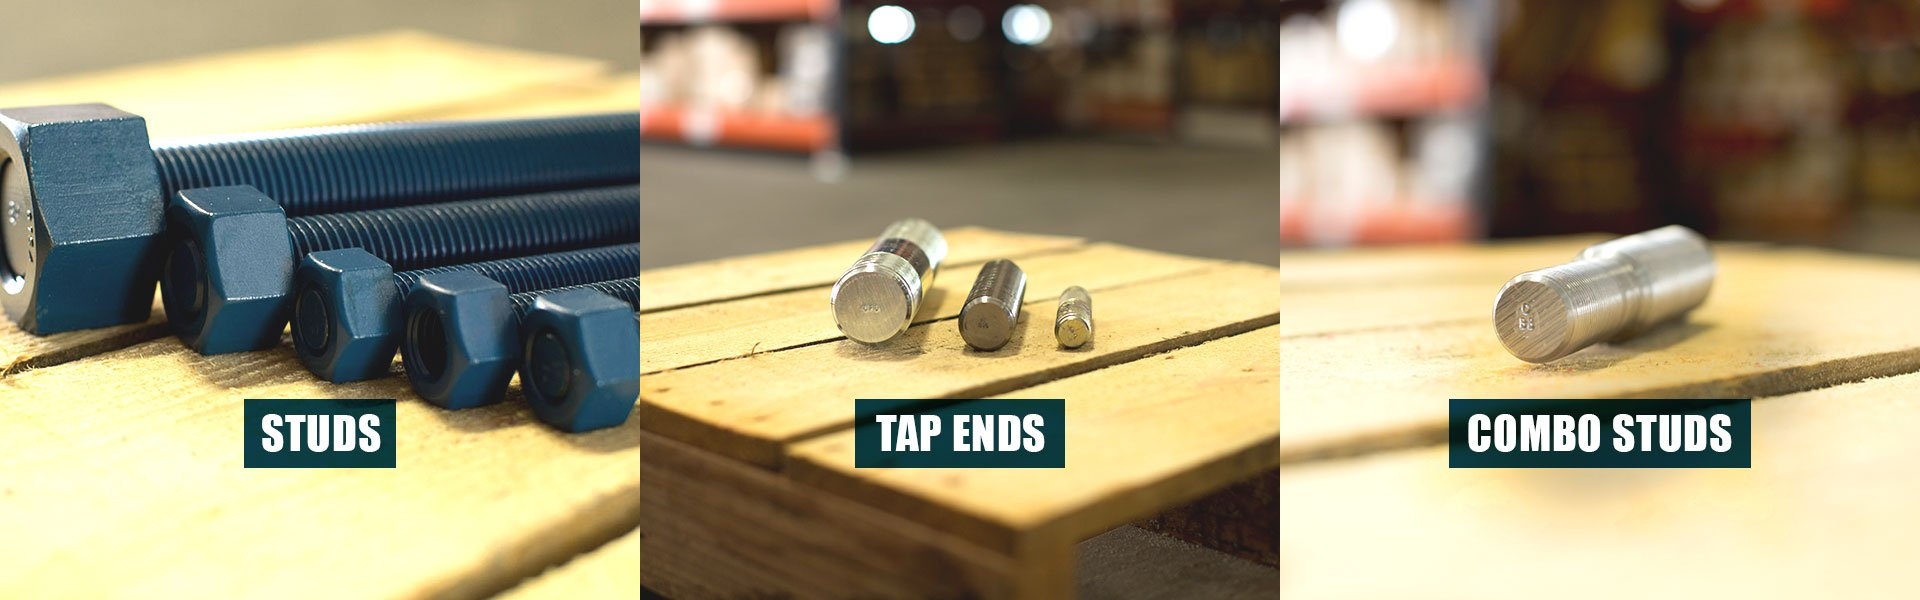 Studs, Tap Ends, Combo Studs